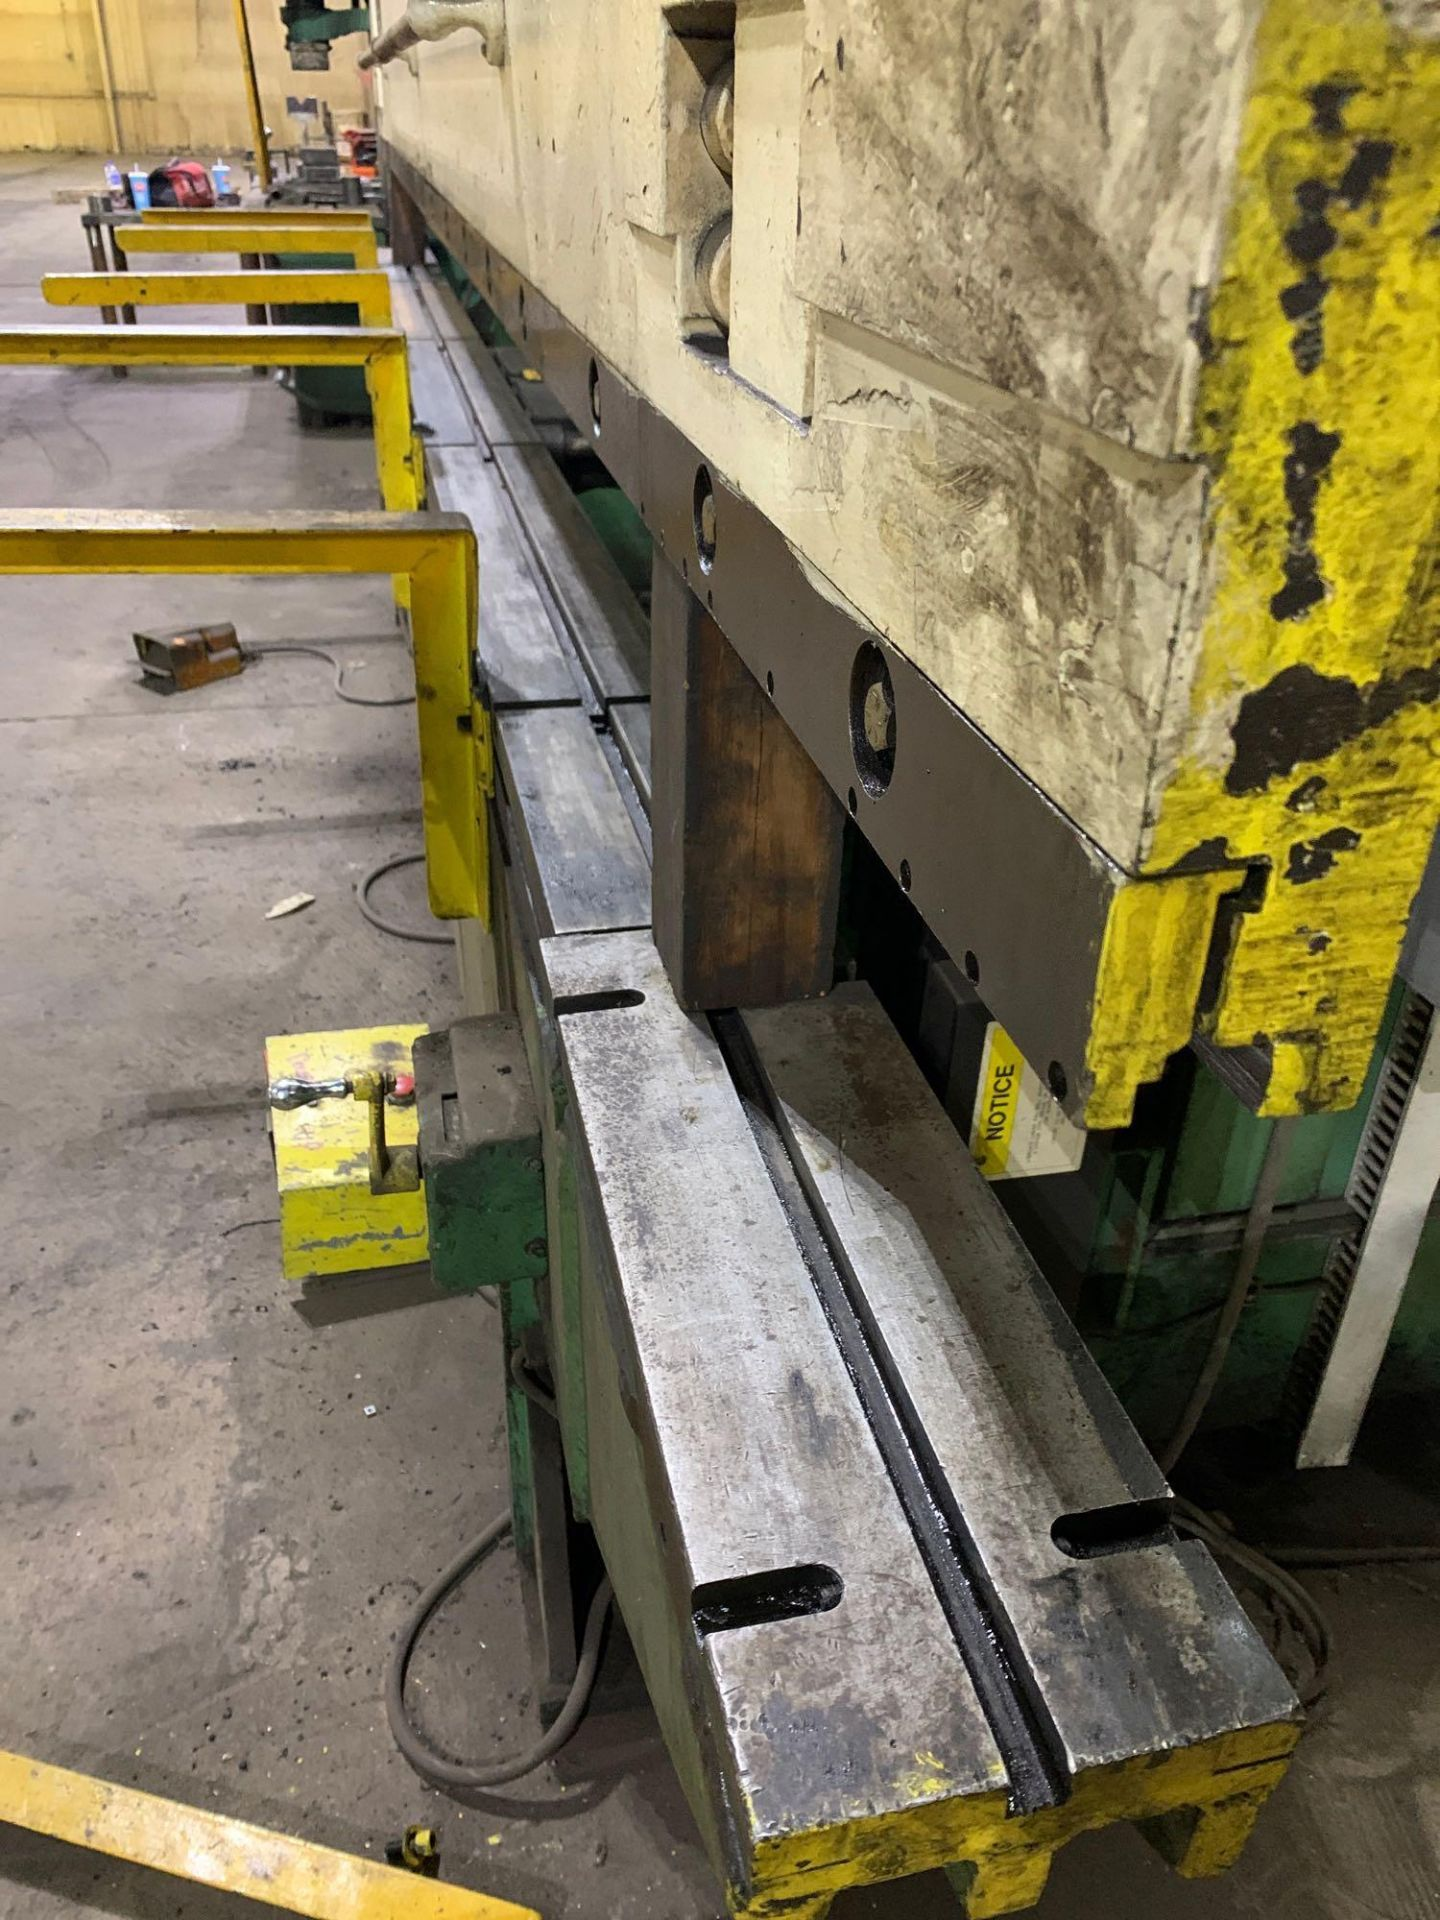 Chicago Dries & Krump Hydraulic Press Brake With: Hurco Autobend 7 Backgauge Control 200 Ton x 16' M - Image 33 of 41